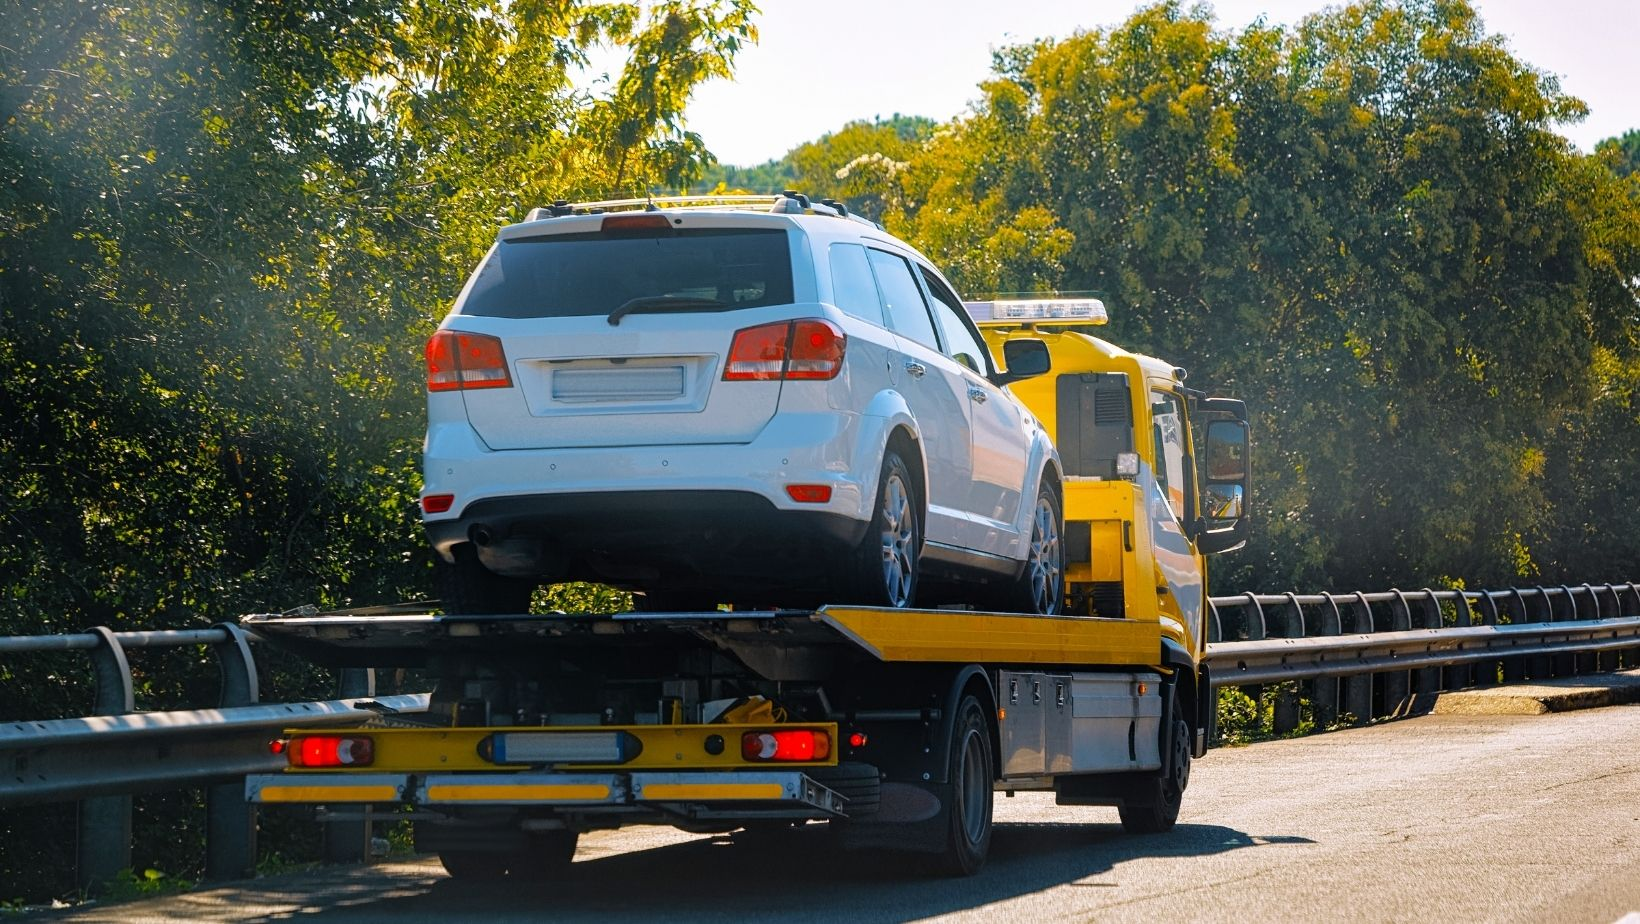 24-Hour Towing Service: Get Fast & Affordable Solutions